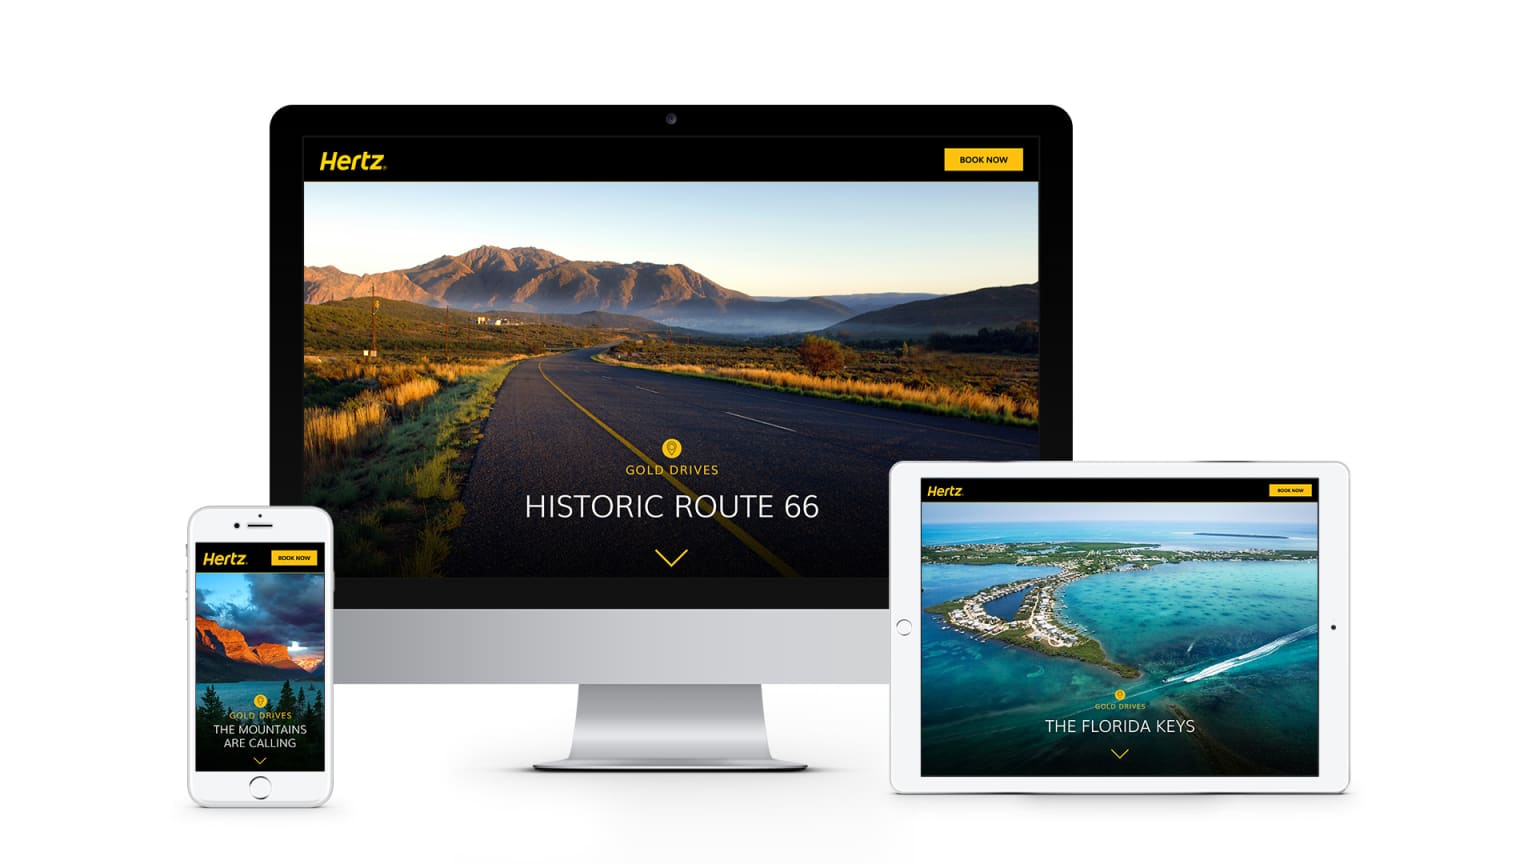 Hertz Gold Drives